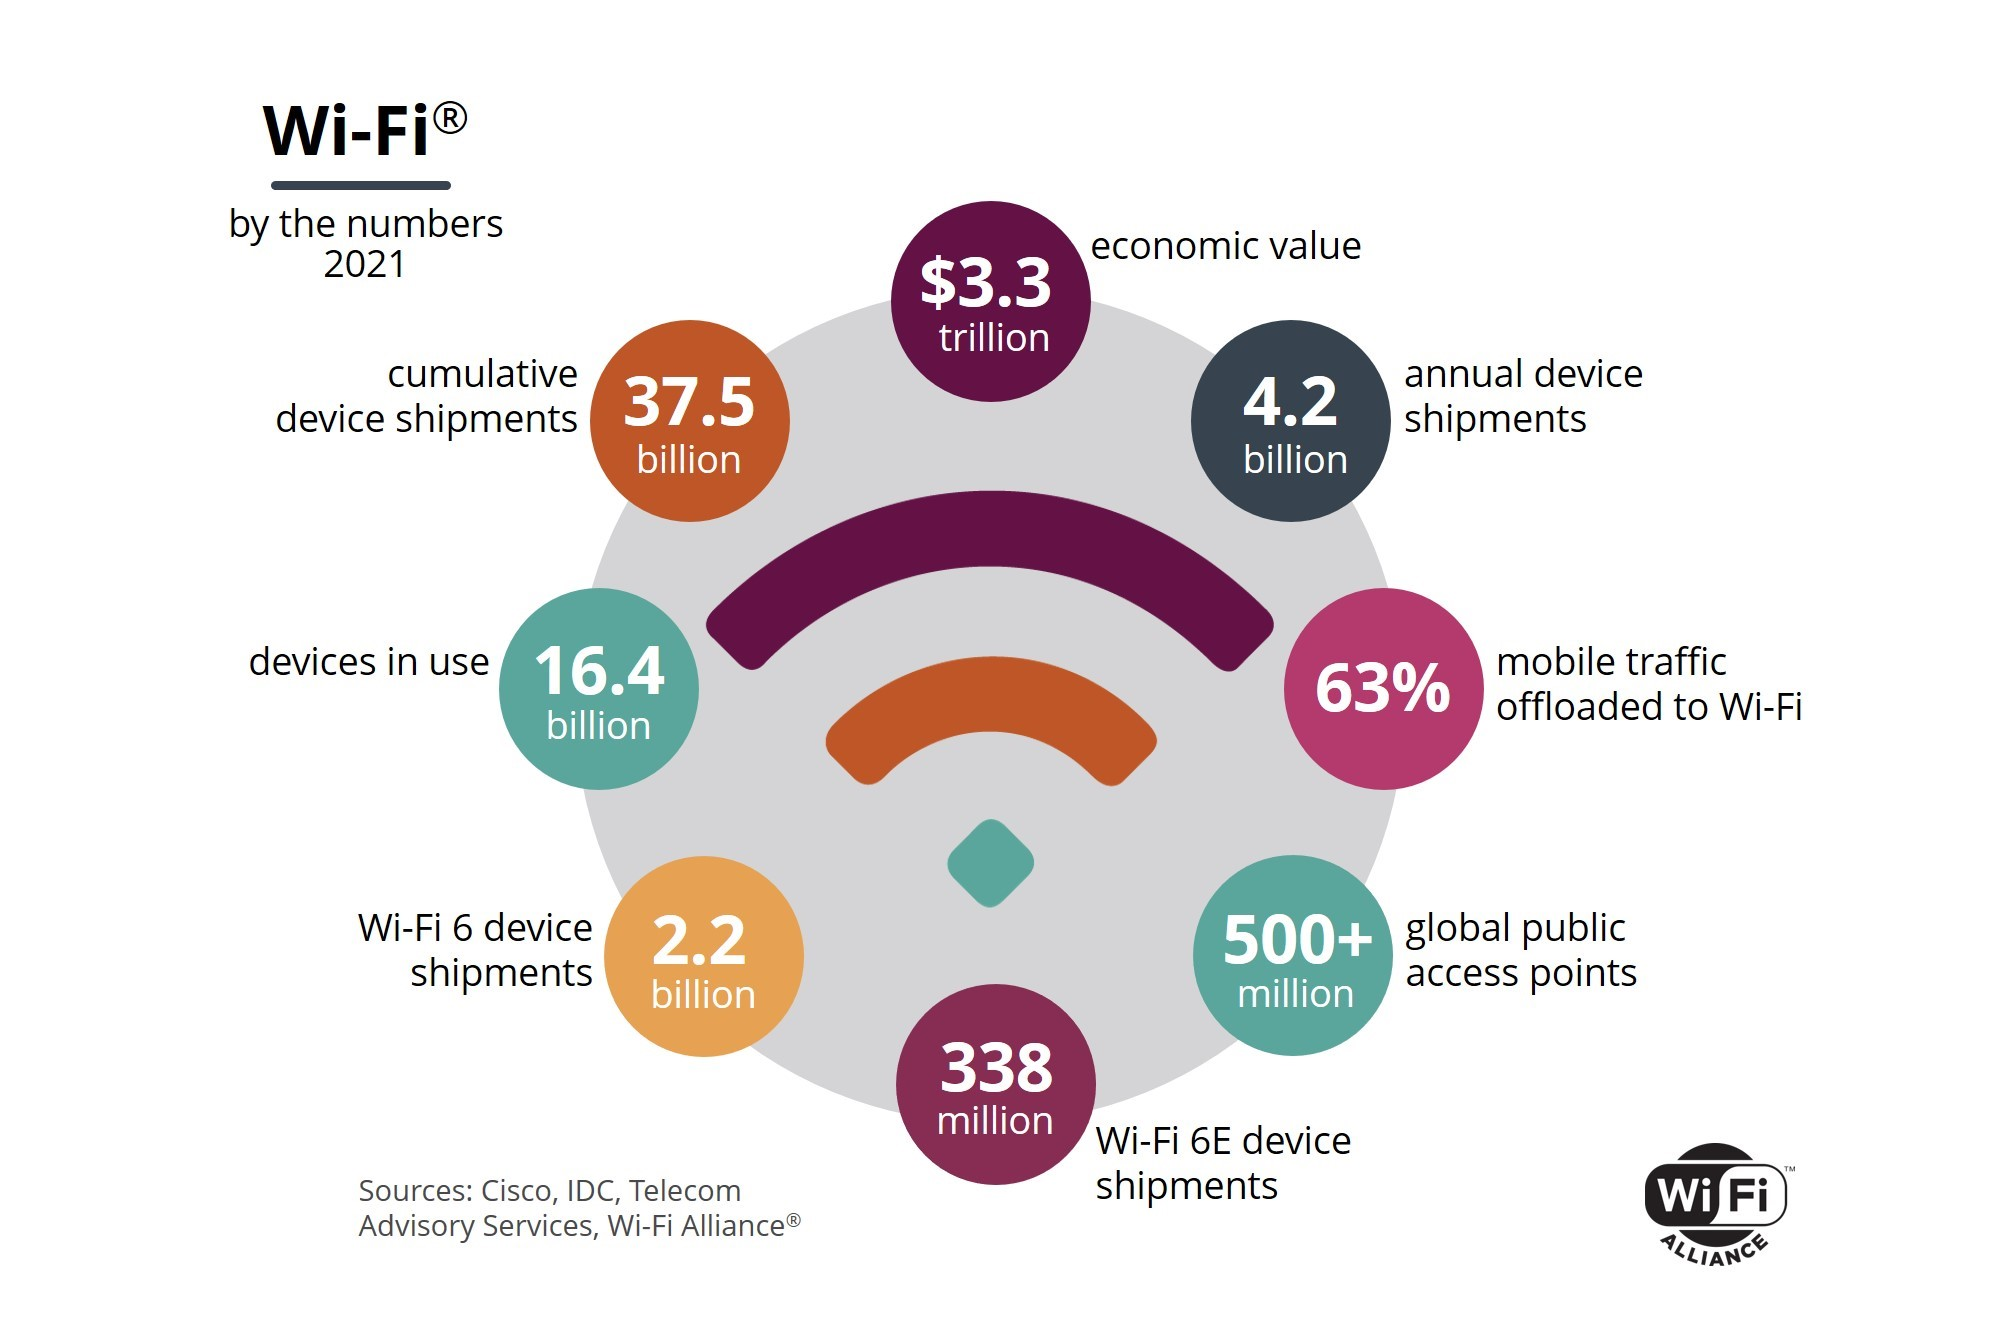 Wi-Fi by the numbers in 2021